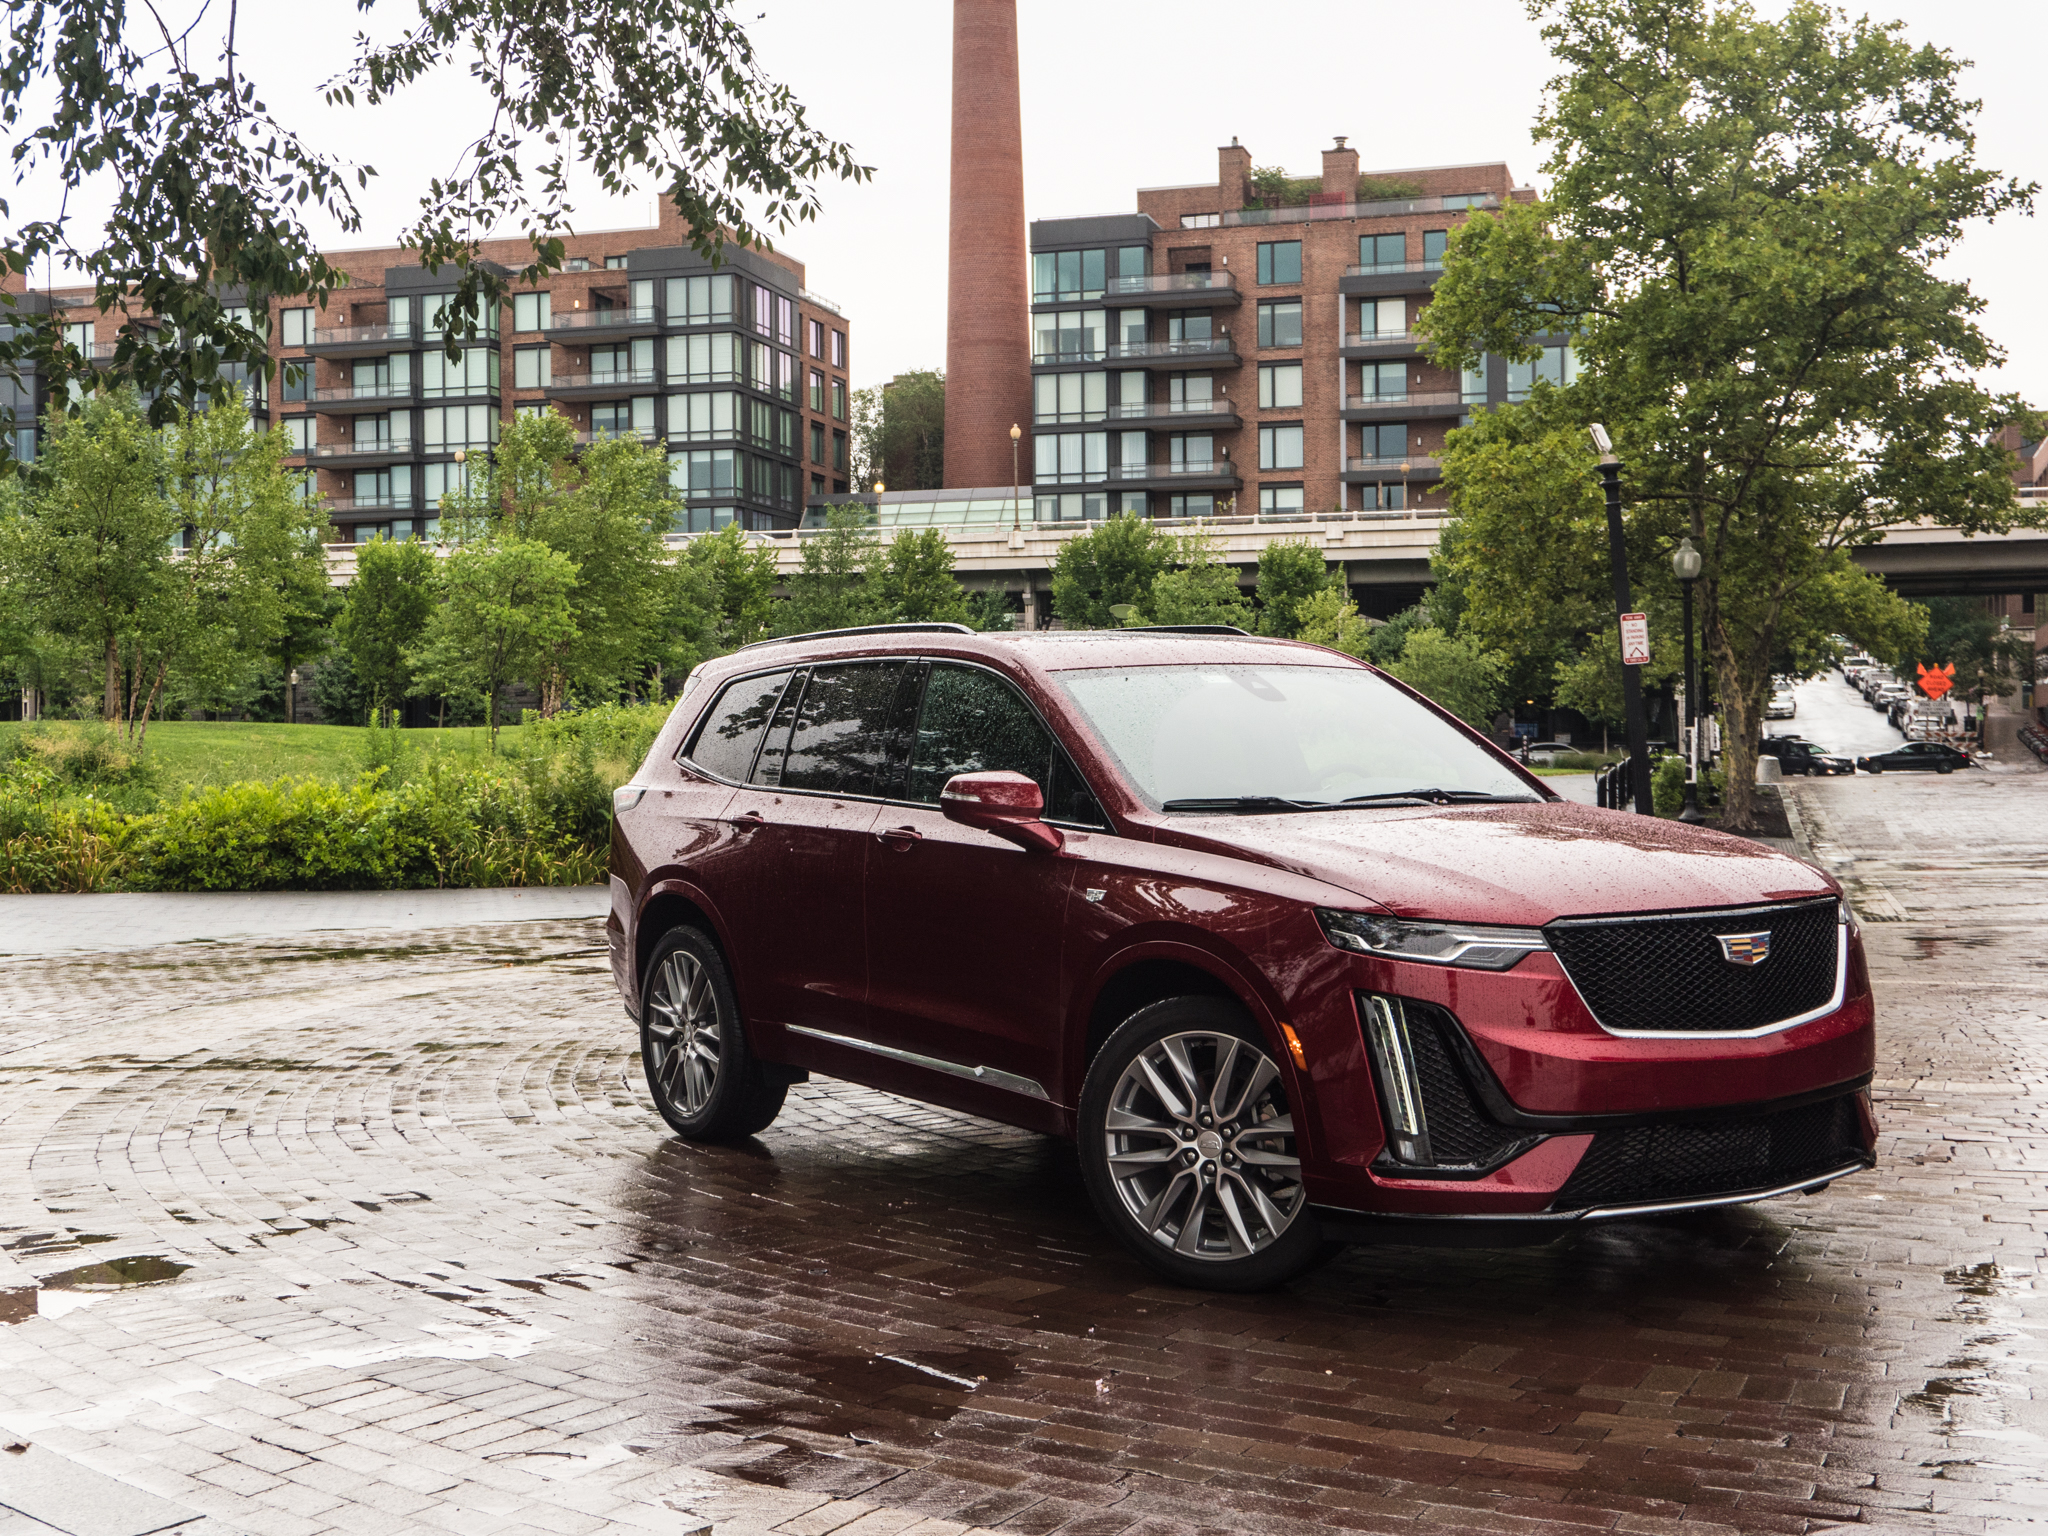 Cadillac chose Washington, DC, as the location for the XT6 first drive, which meant I got to try it on roads I know. It also meant I got to sleep in my own bed for once, which was a wonderful change from the norm.